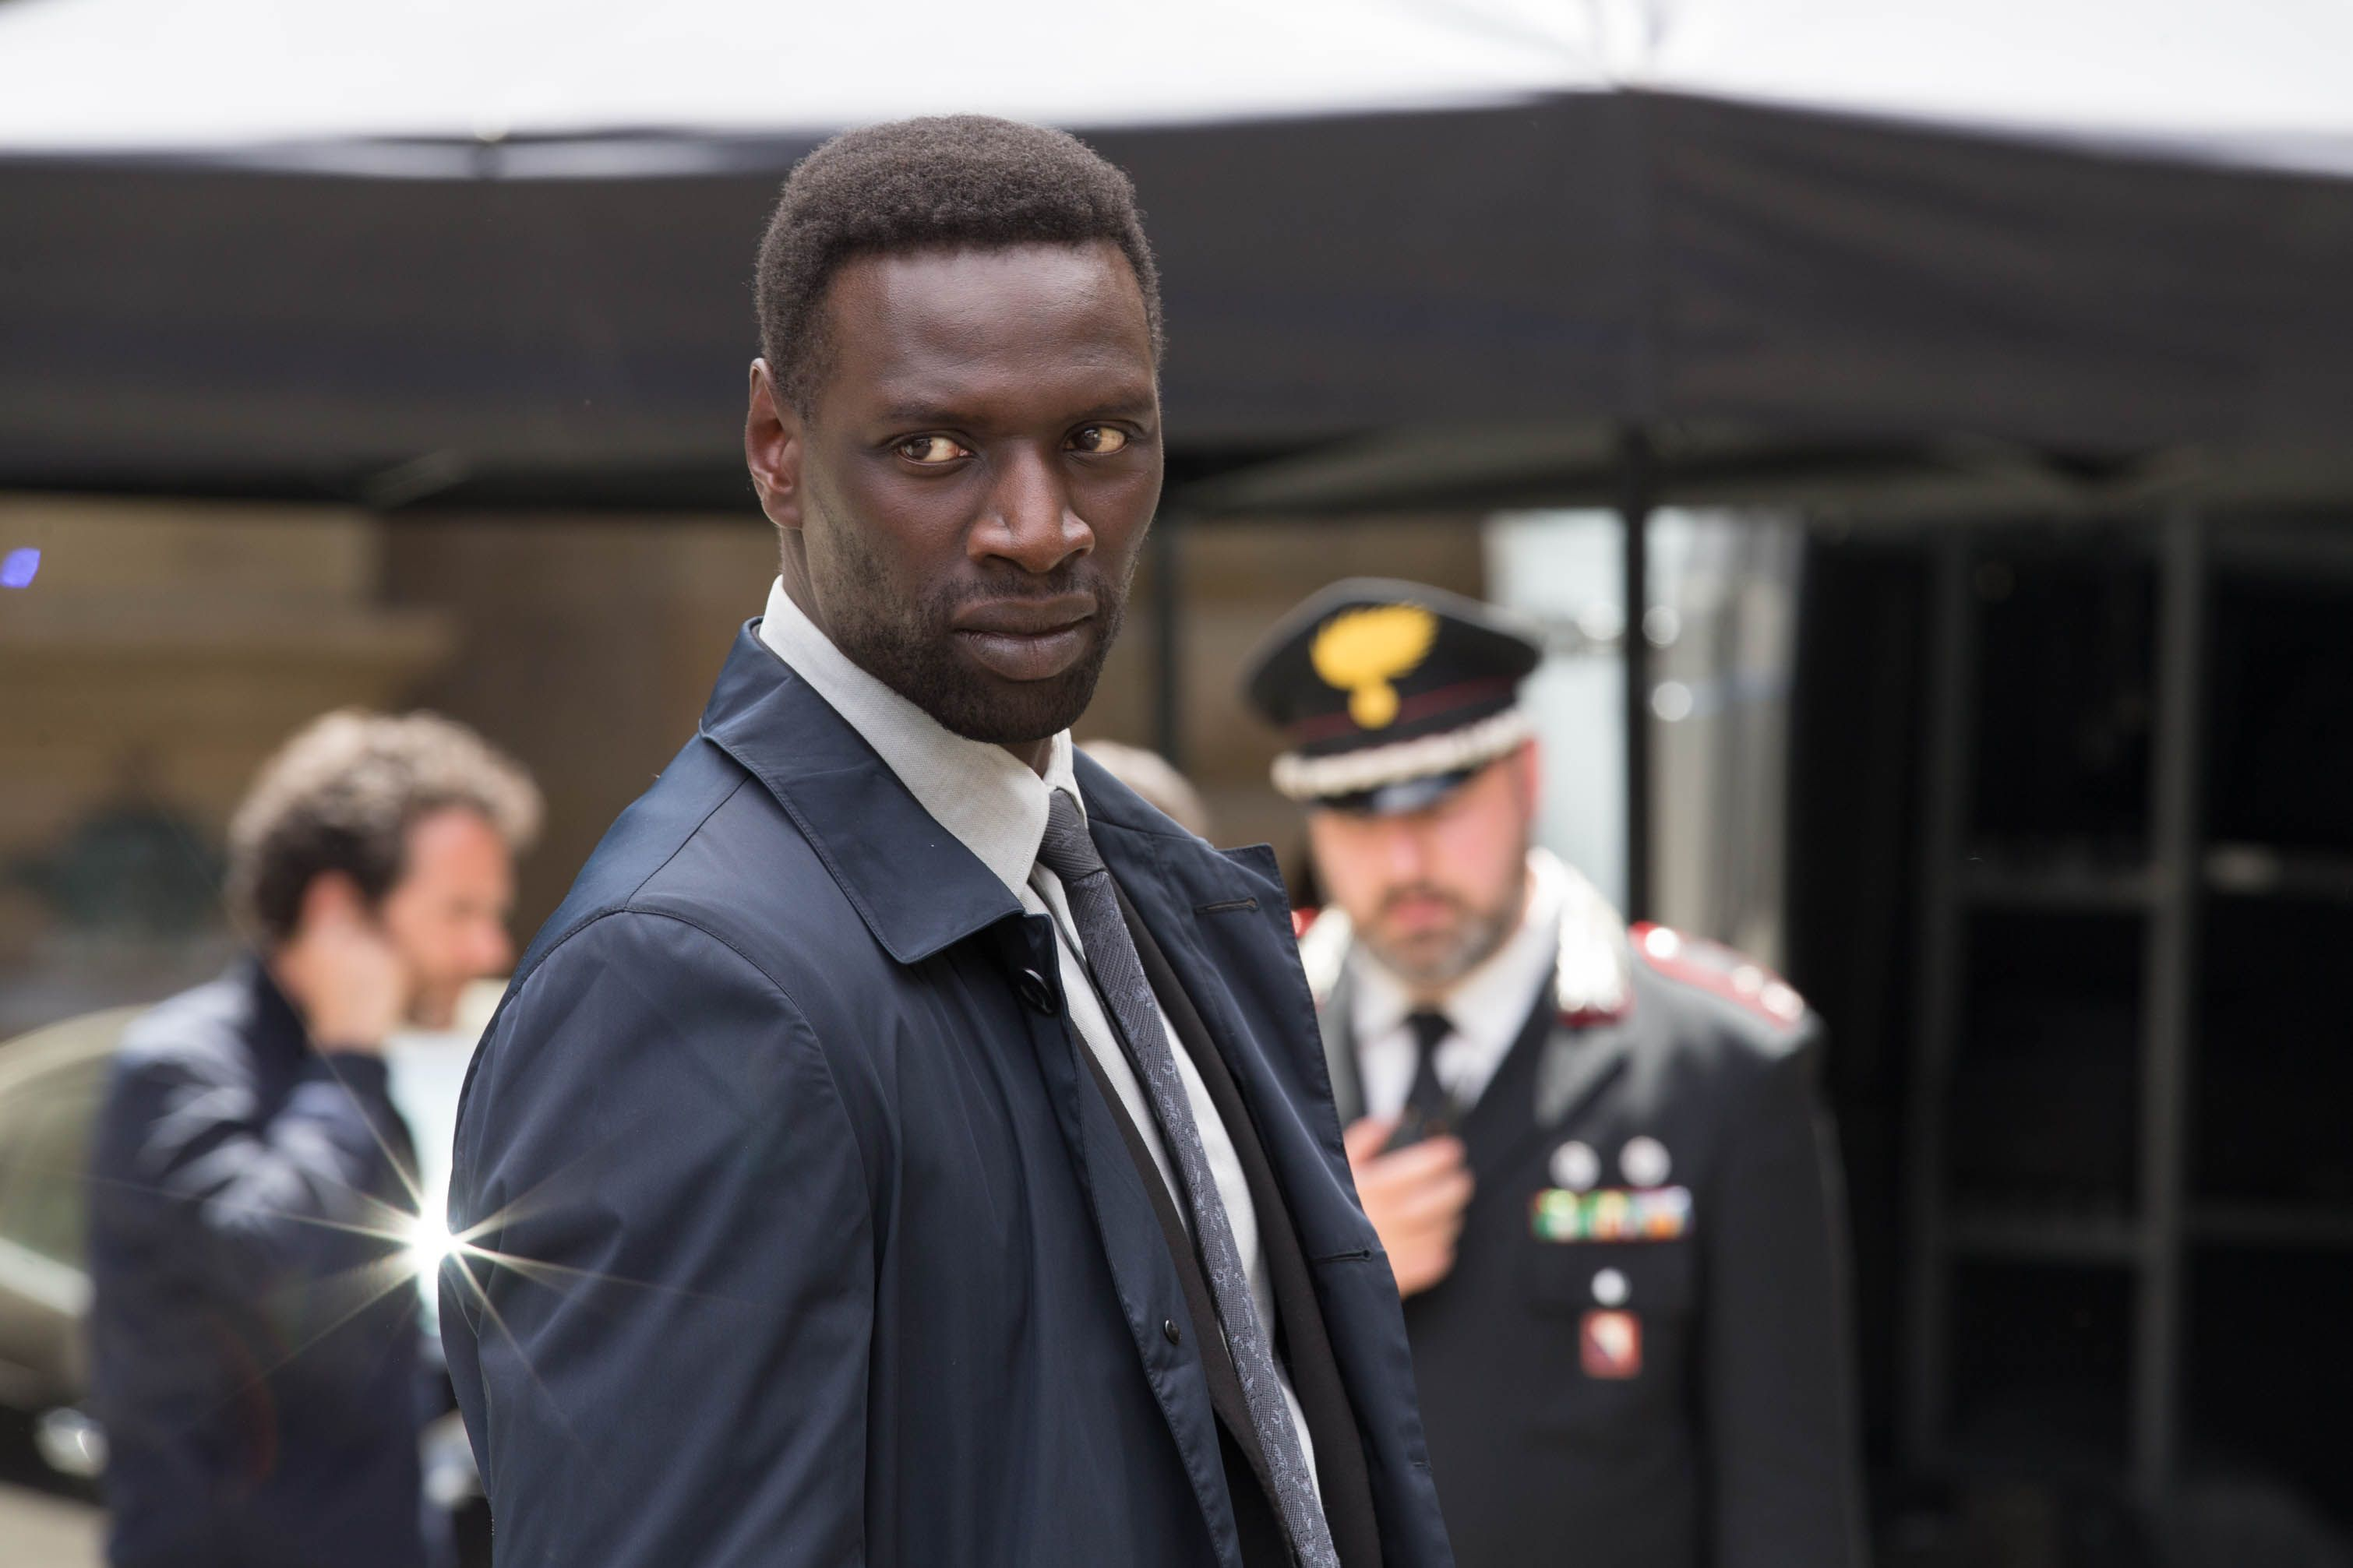 inferno-movie-omar-sy.jpg (3020×2013)